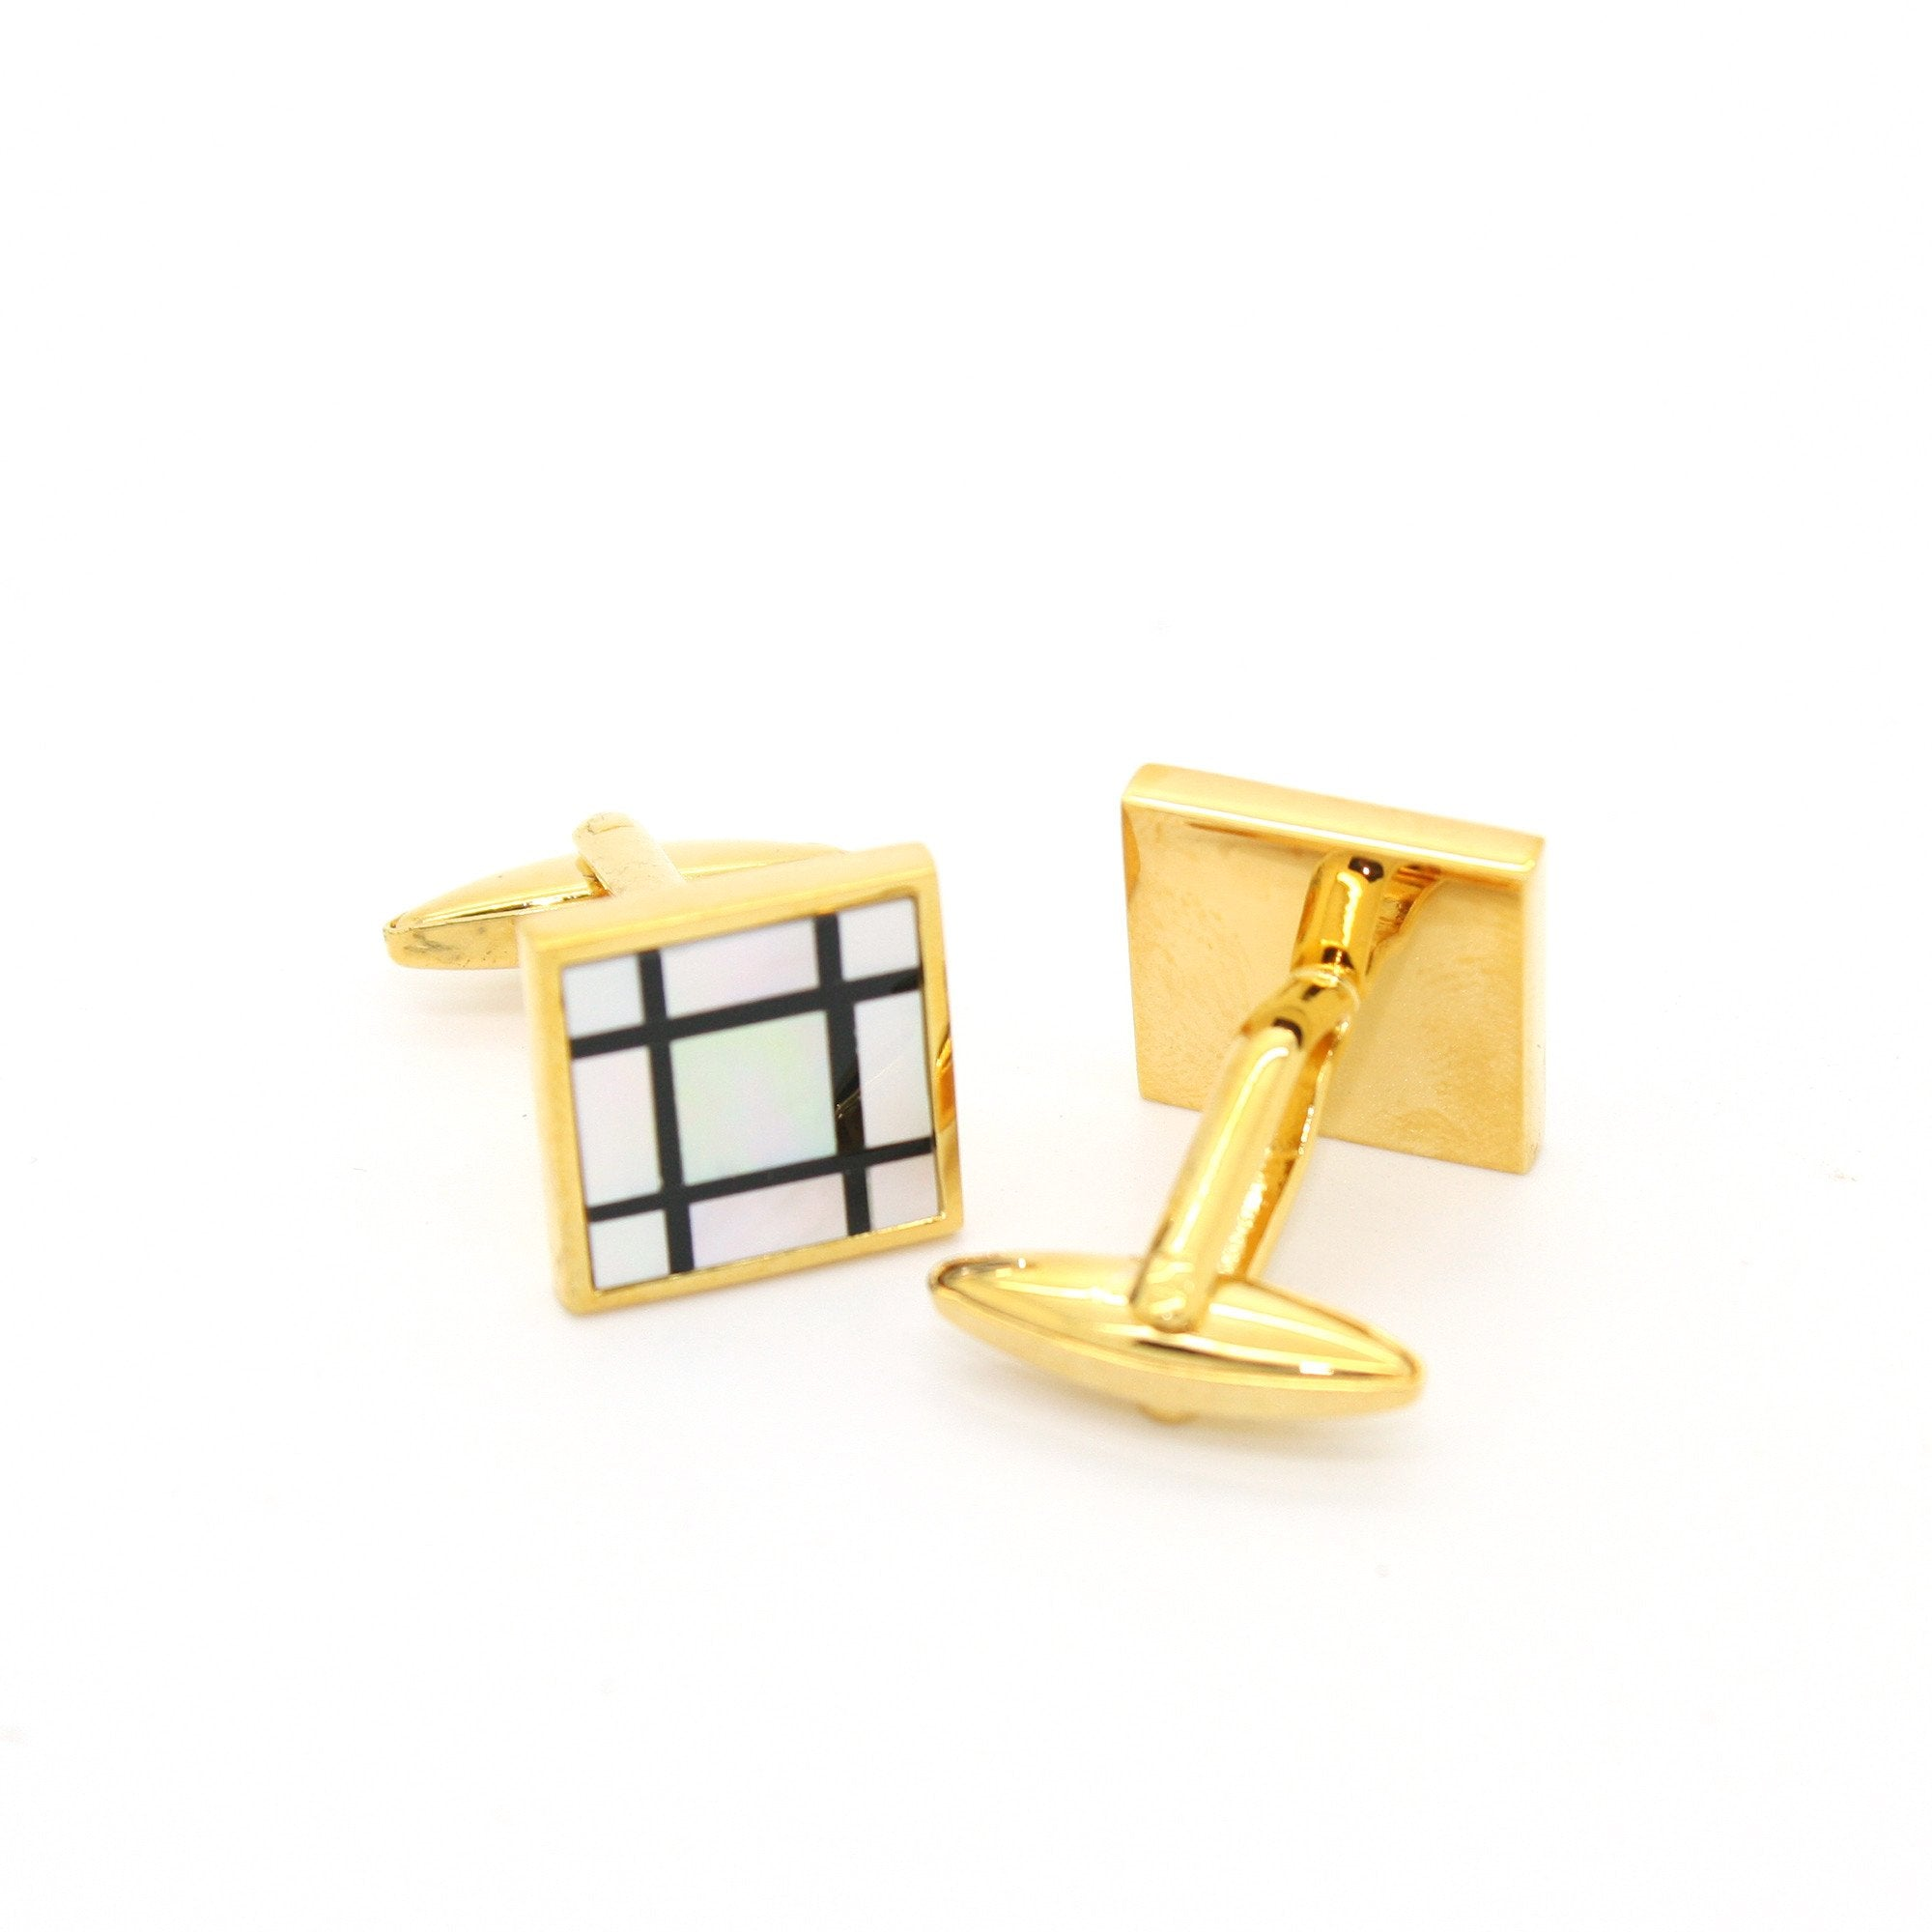 Goldtone White Shell Cuff Links With Jewelry Box - Giorgio's Menswear